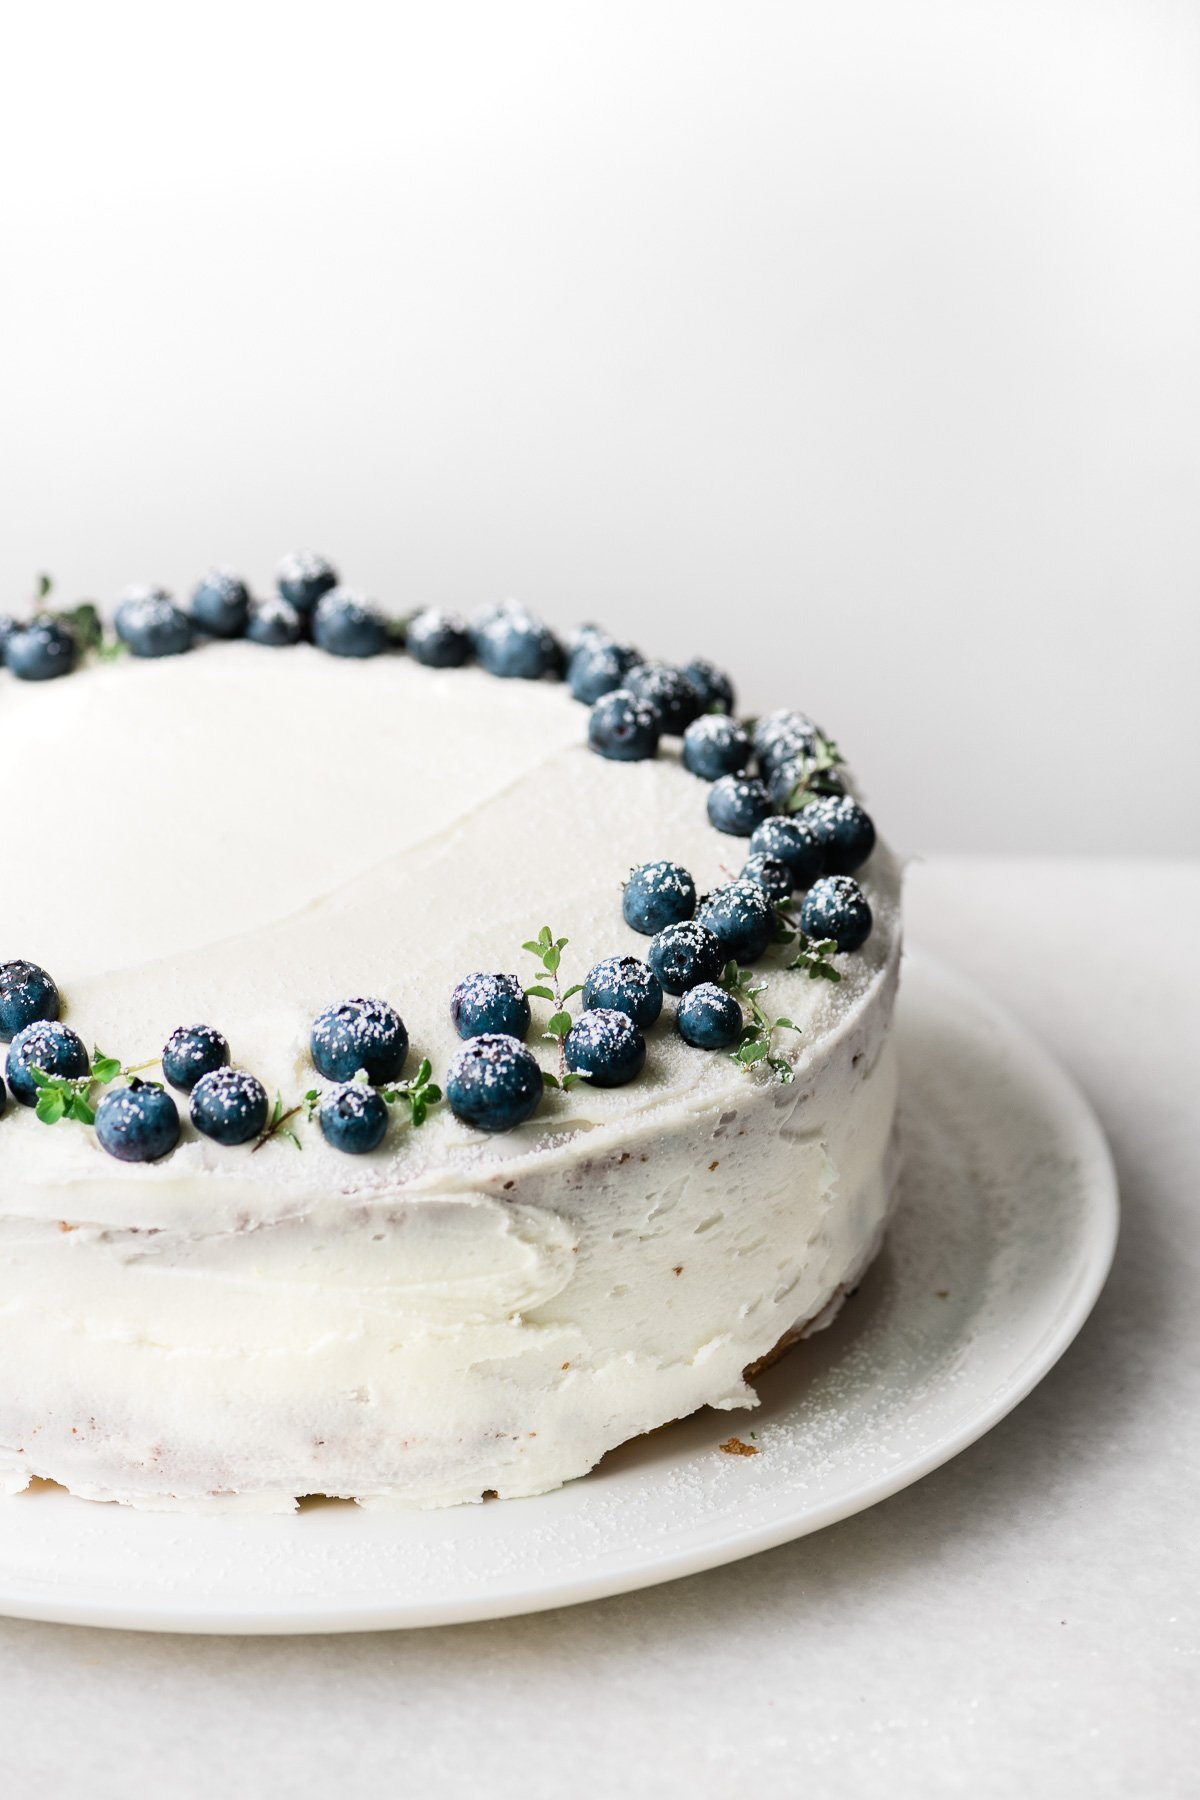 A blueberry lemon layer cake topped with fresh blueberries